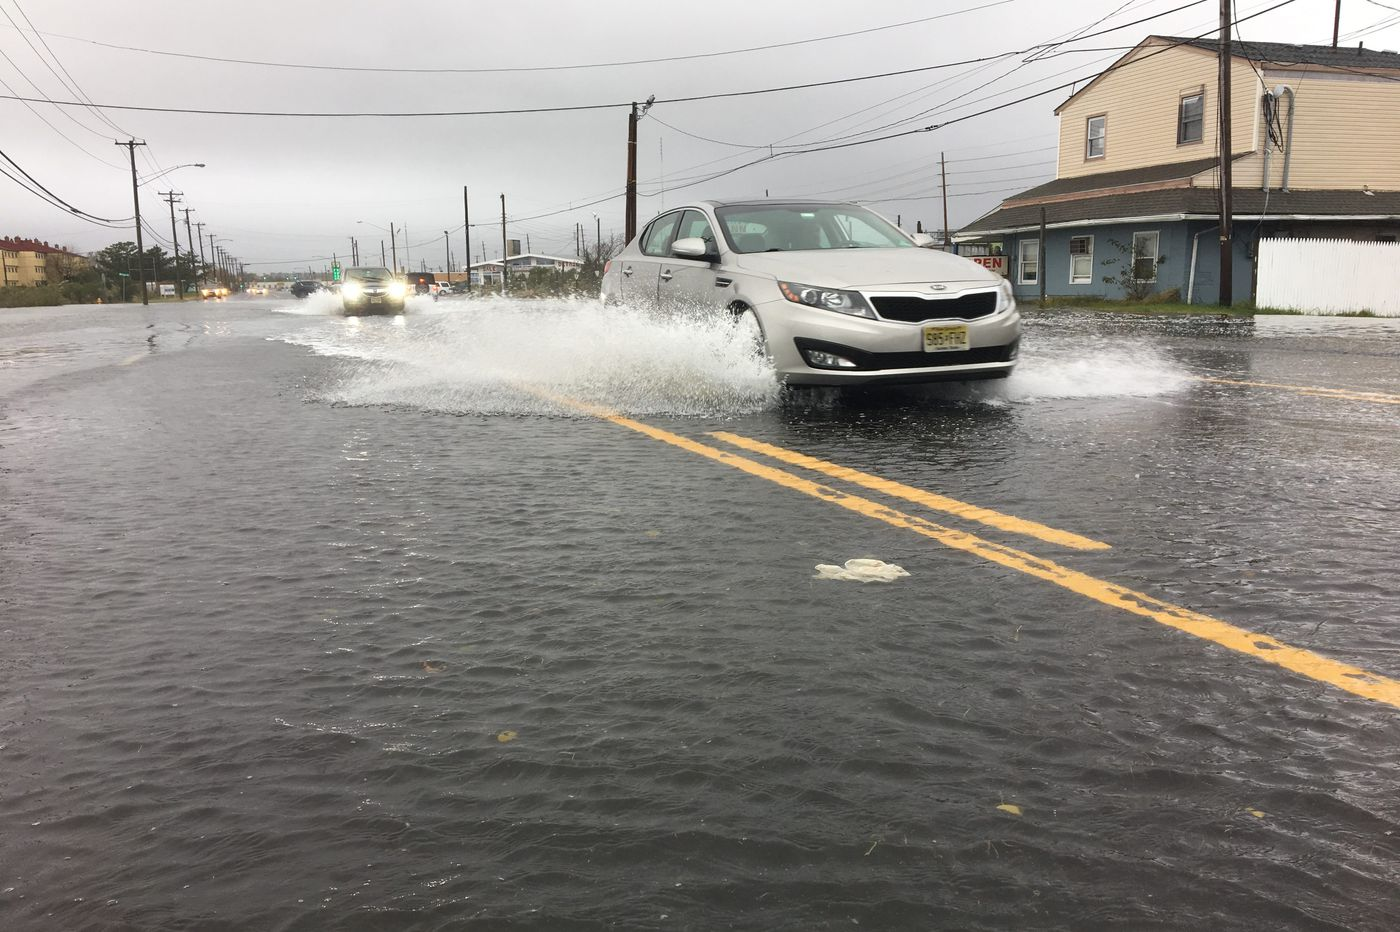 Climate change blamed for grim outlook on Jersey Shore flooding, federal report says